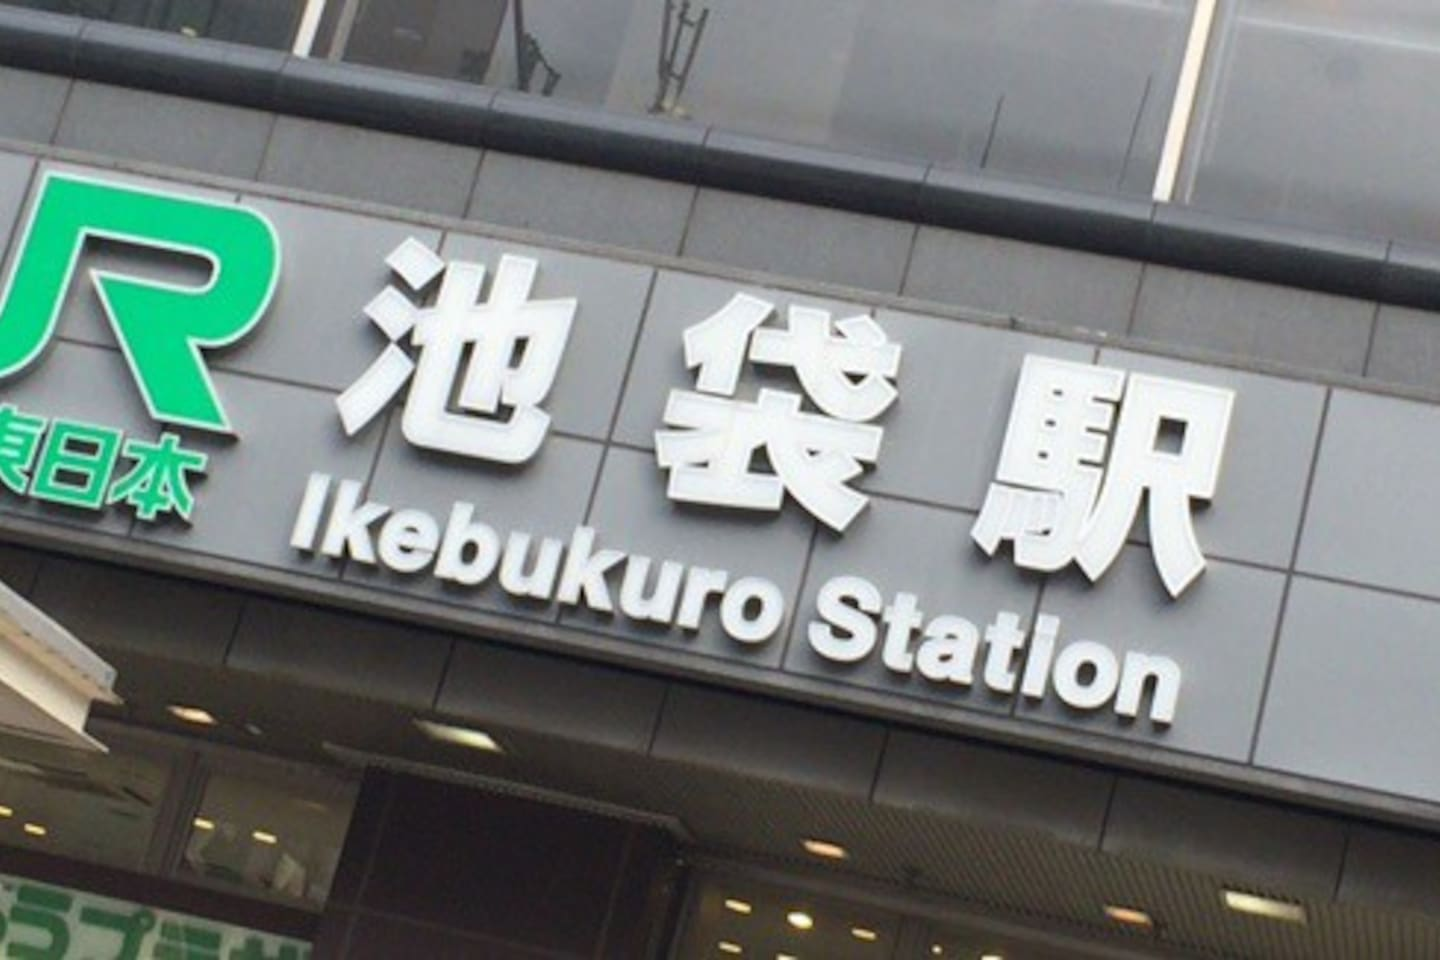 Ikebukuro is a very big station.